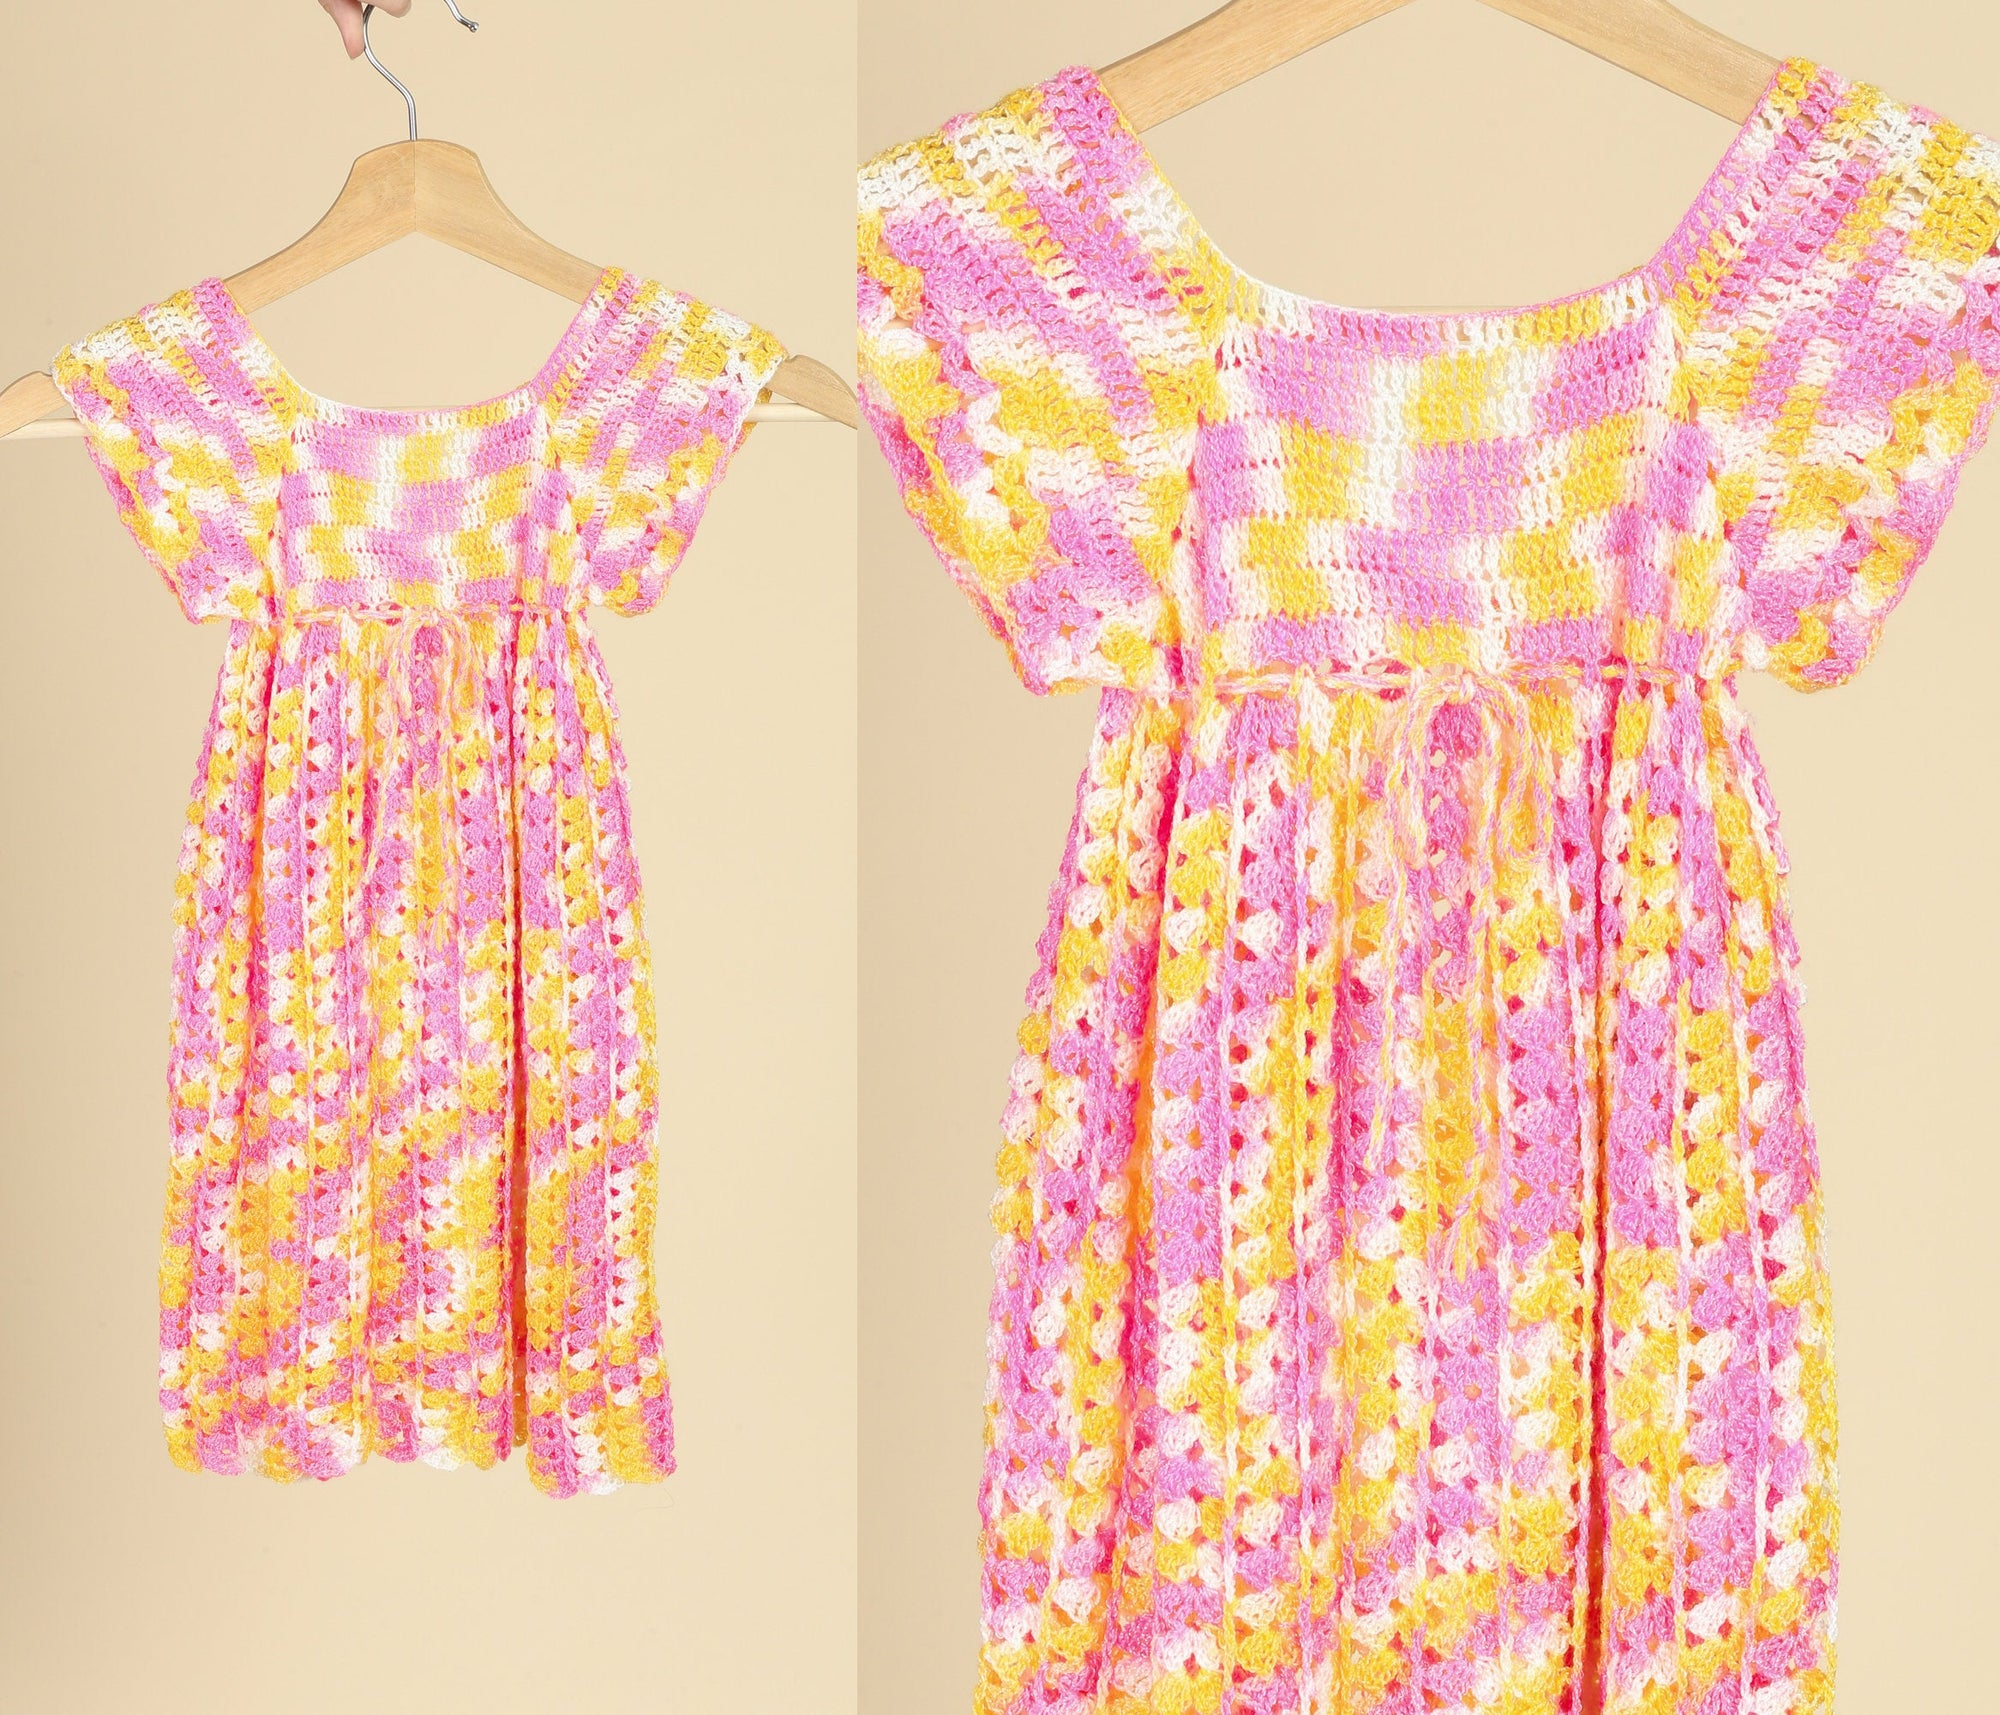 Vintage Colorful Knit Toddler Dress - 2T to 3T